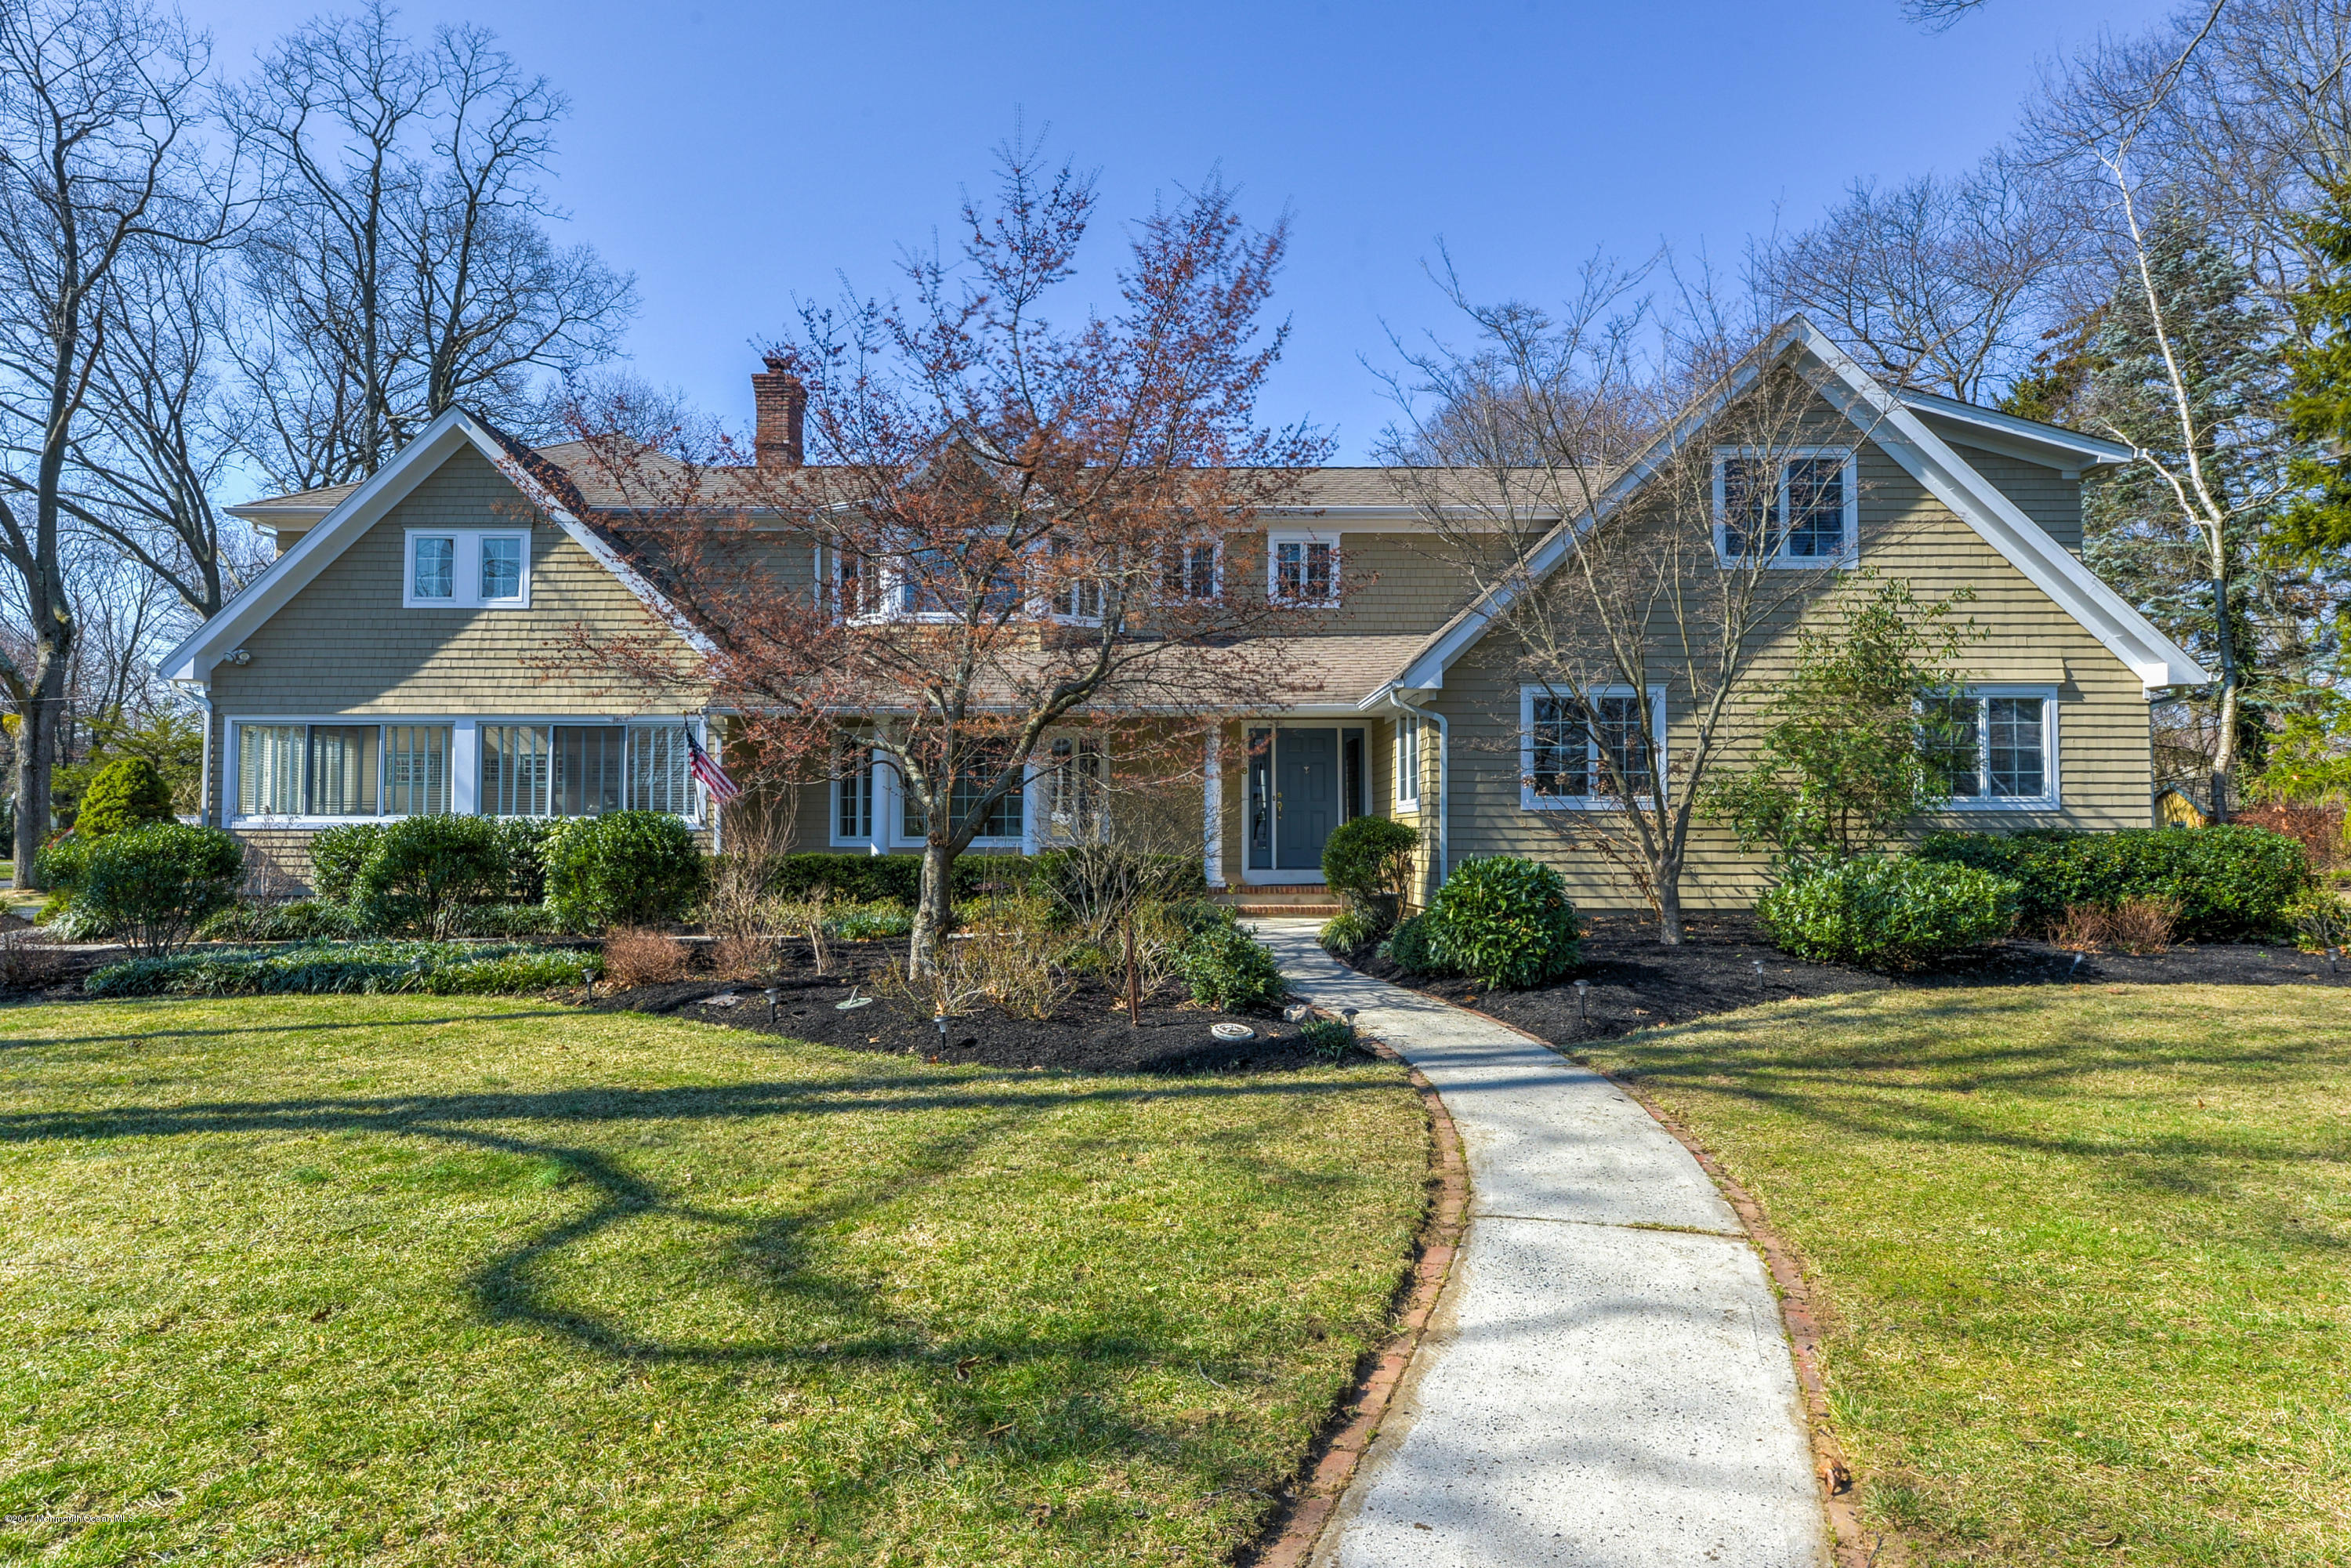 8 EVERGREEN DRIVE, RUMSON, NJ 07760